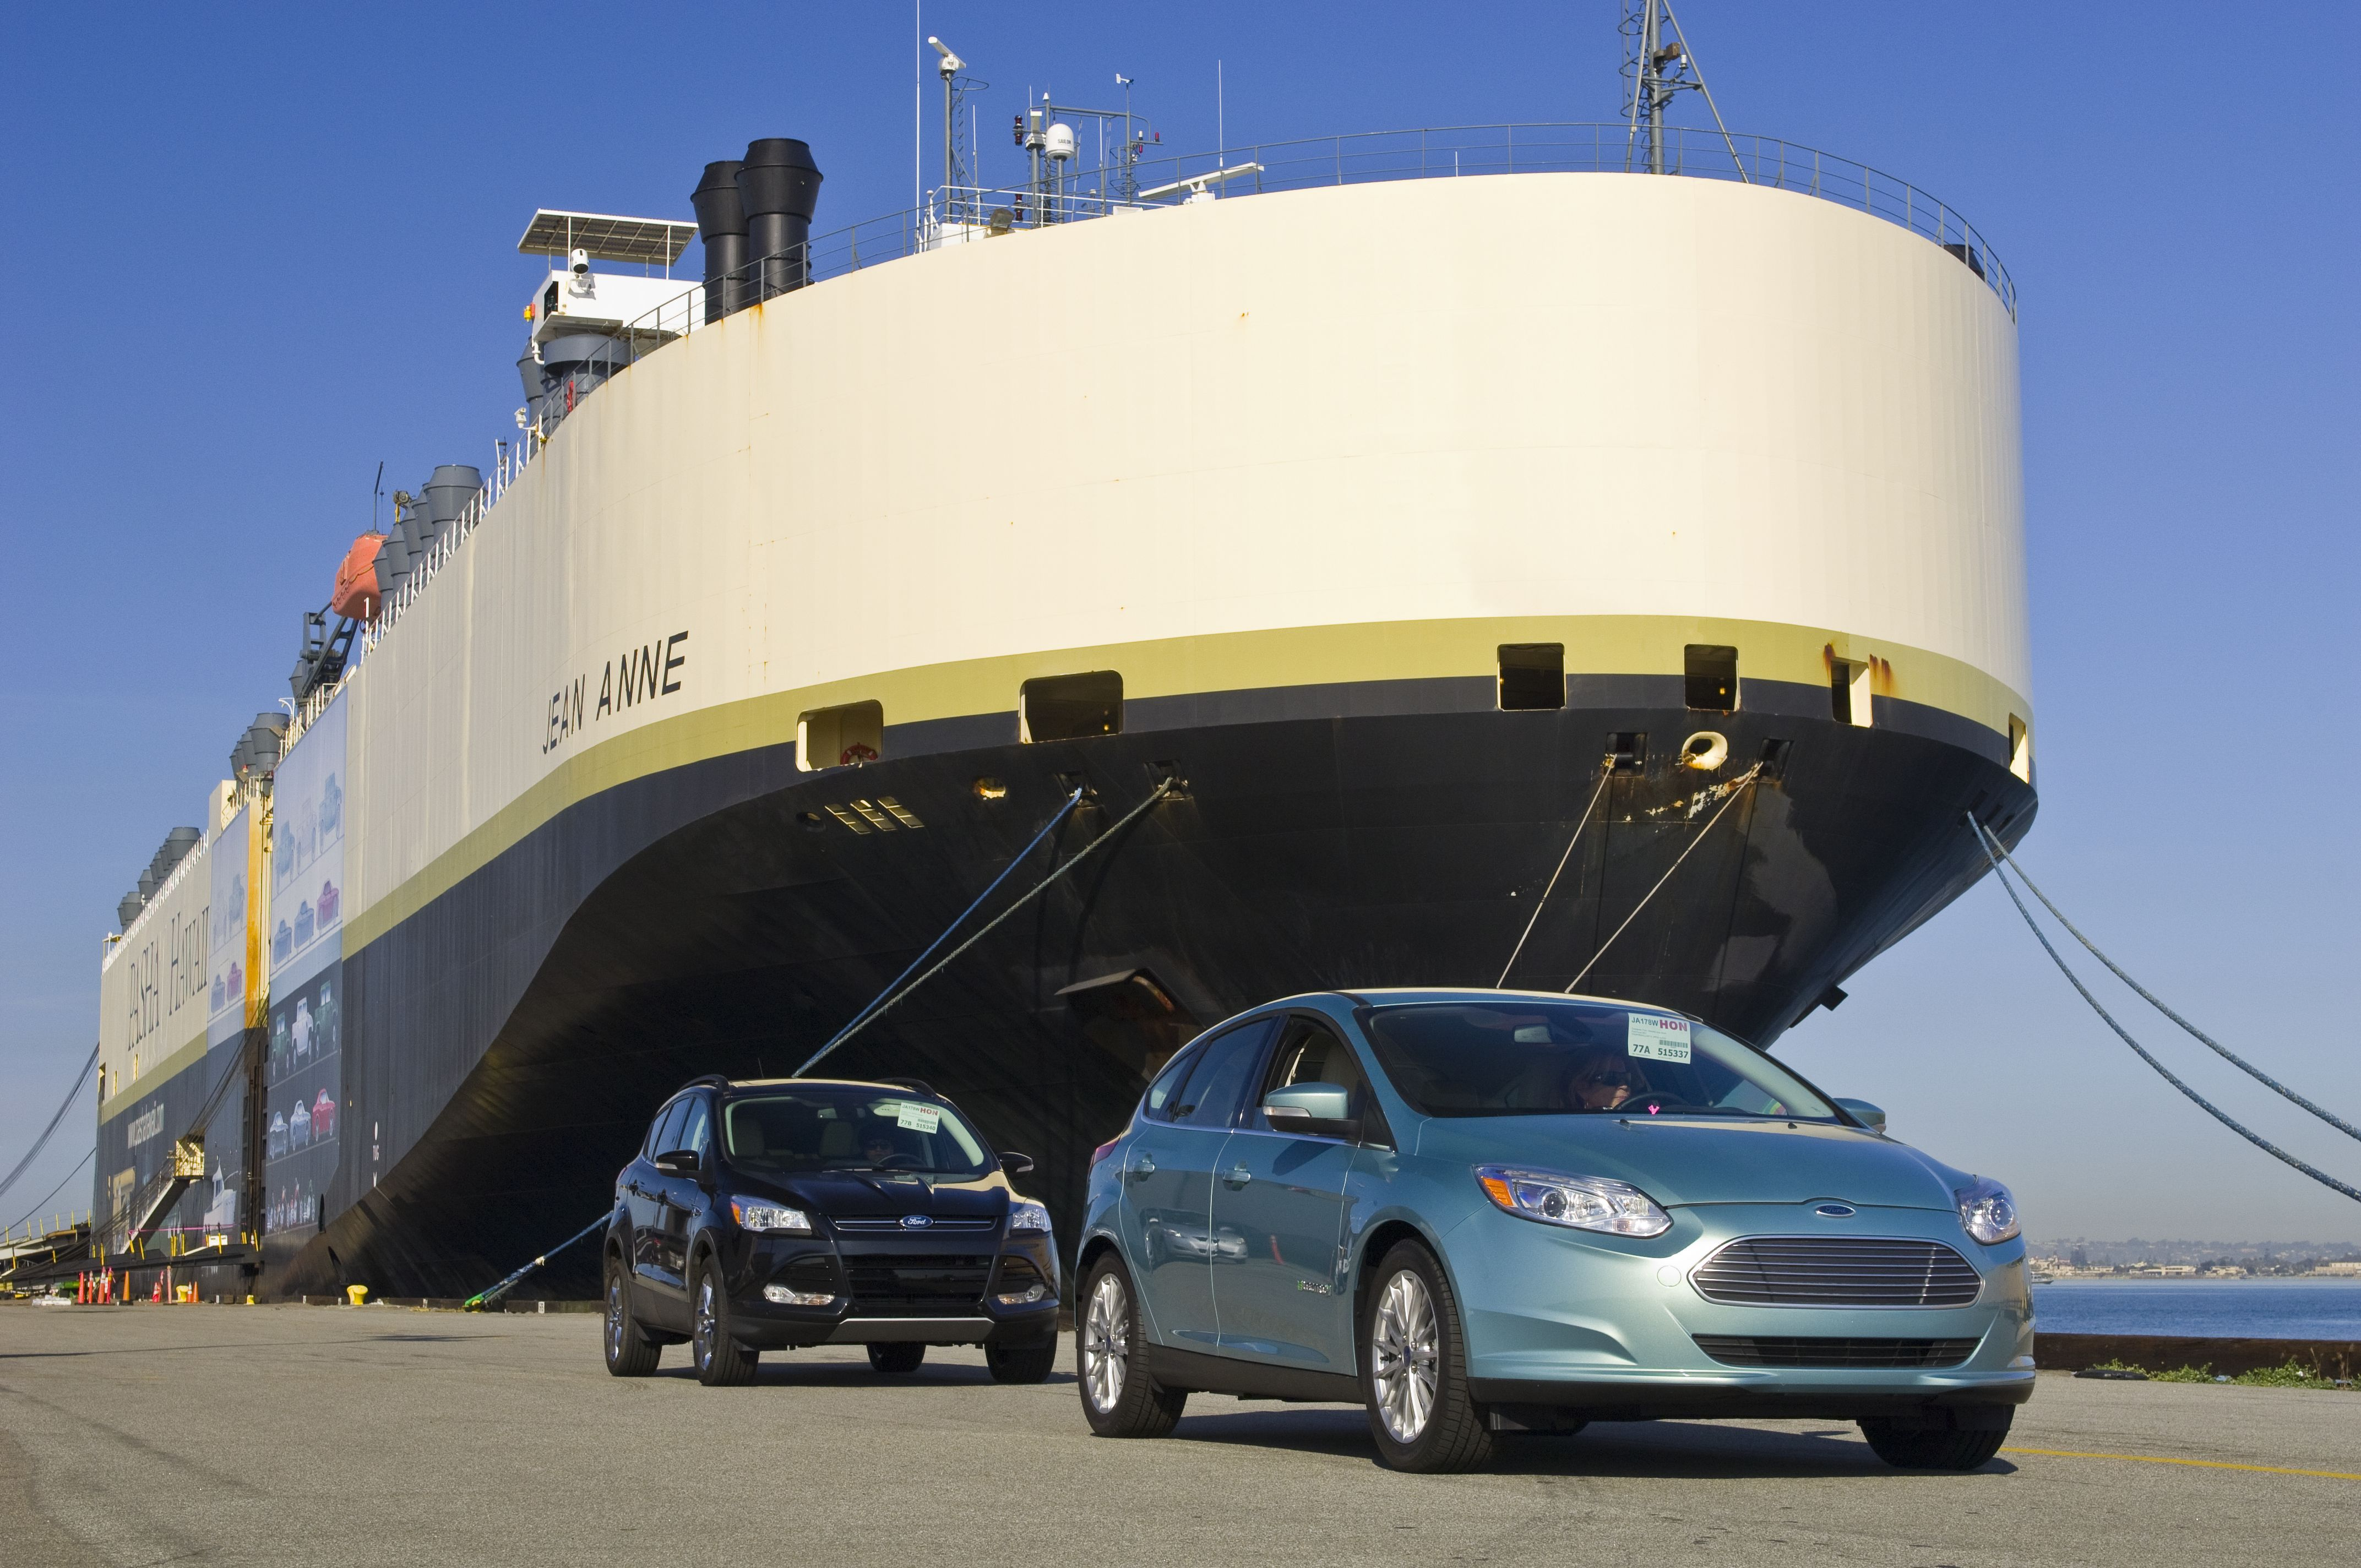 Port Of San Francisco Welcomes Pasha Automotive Services To Pier - Cruise ship terminal in san francisco